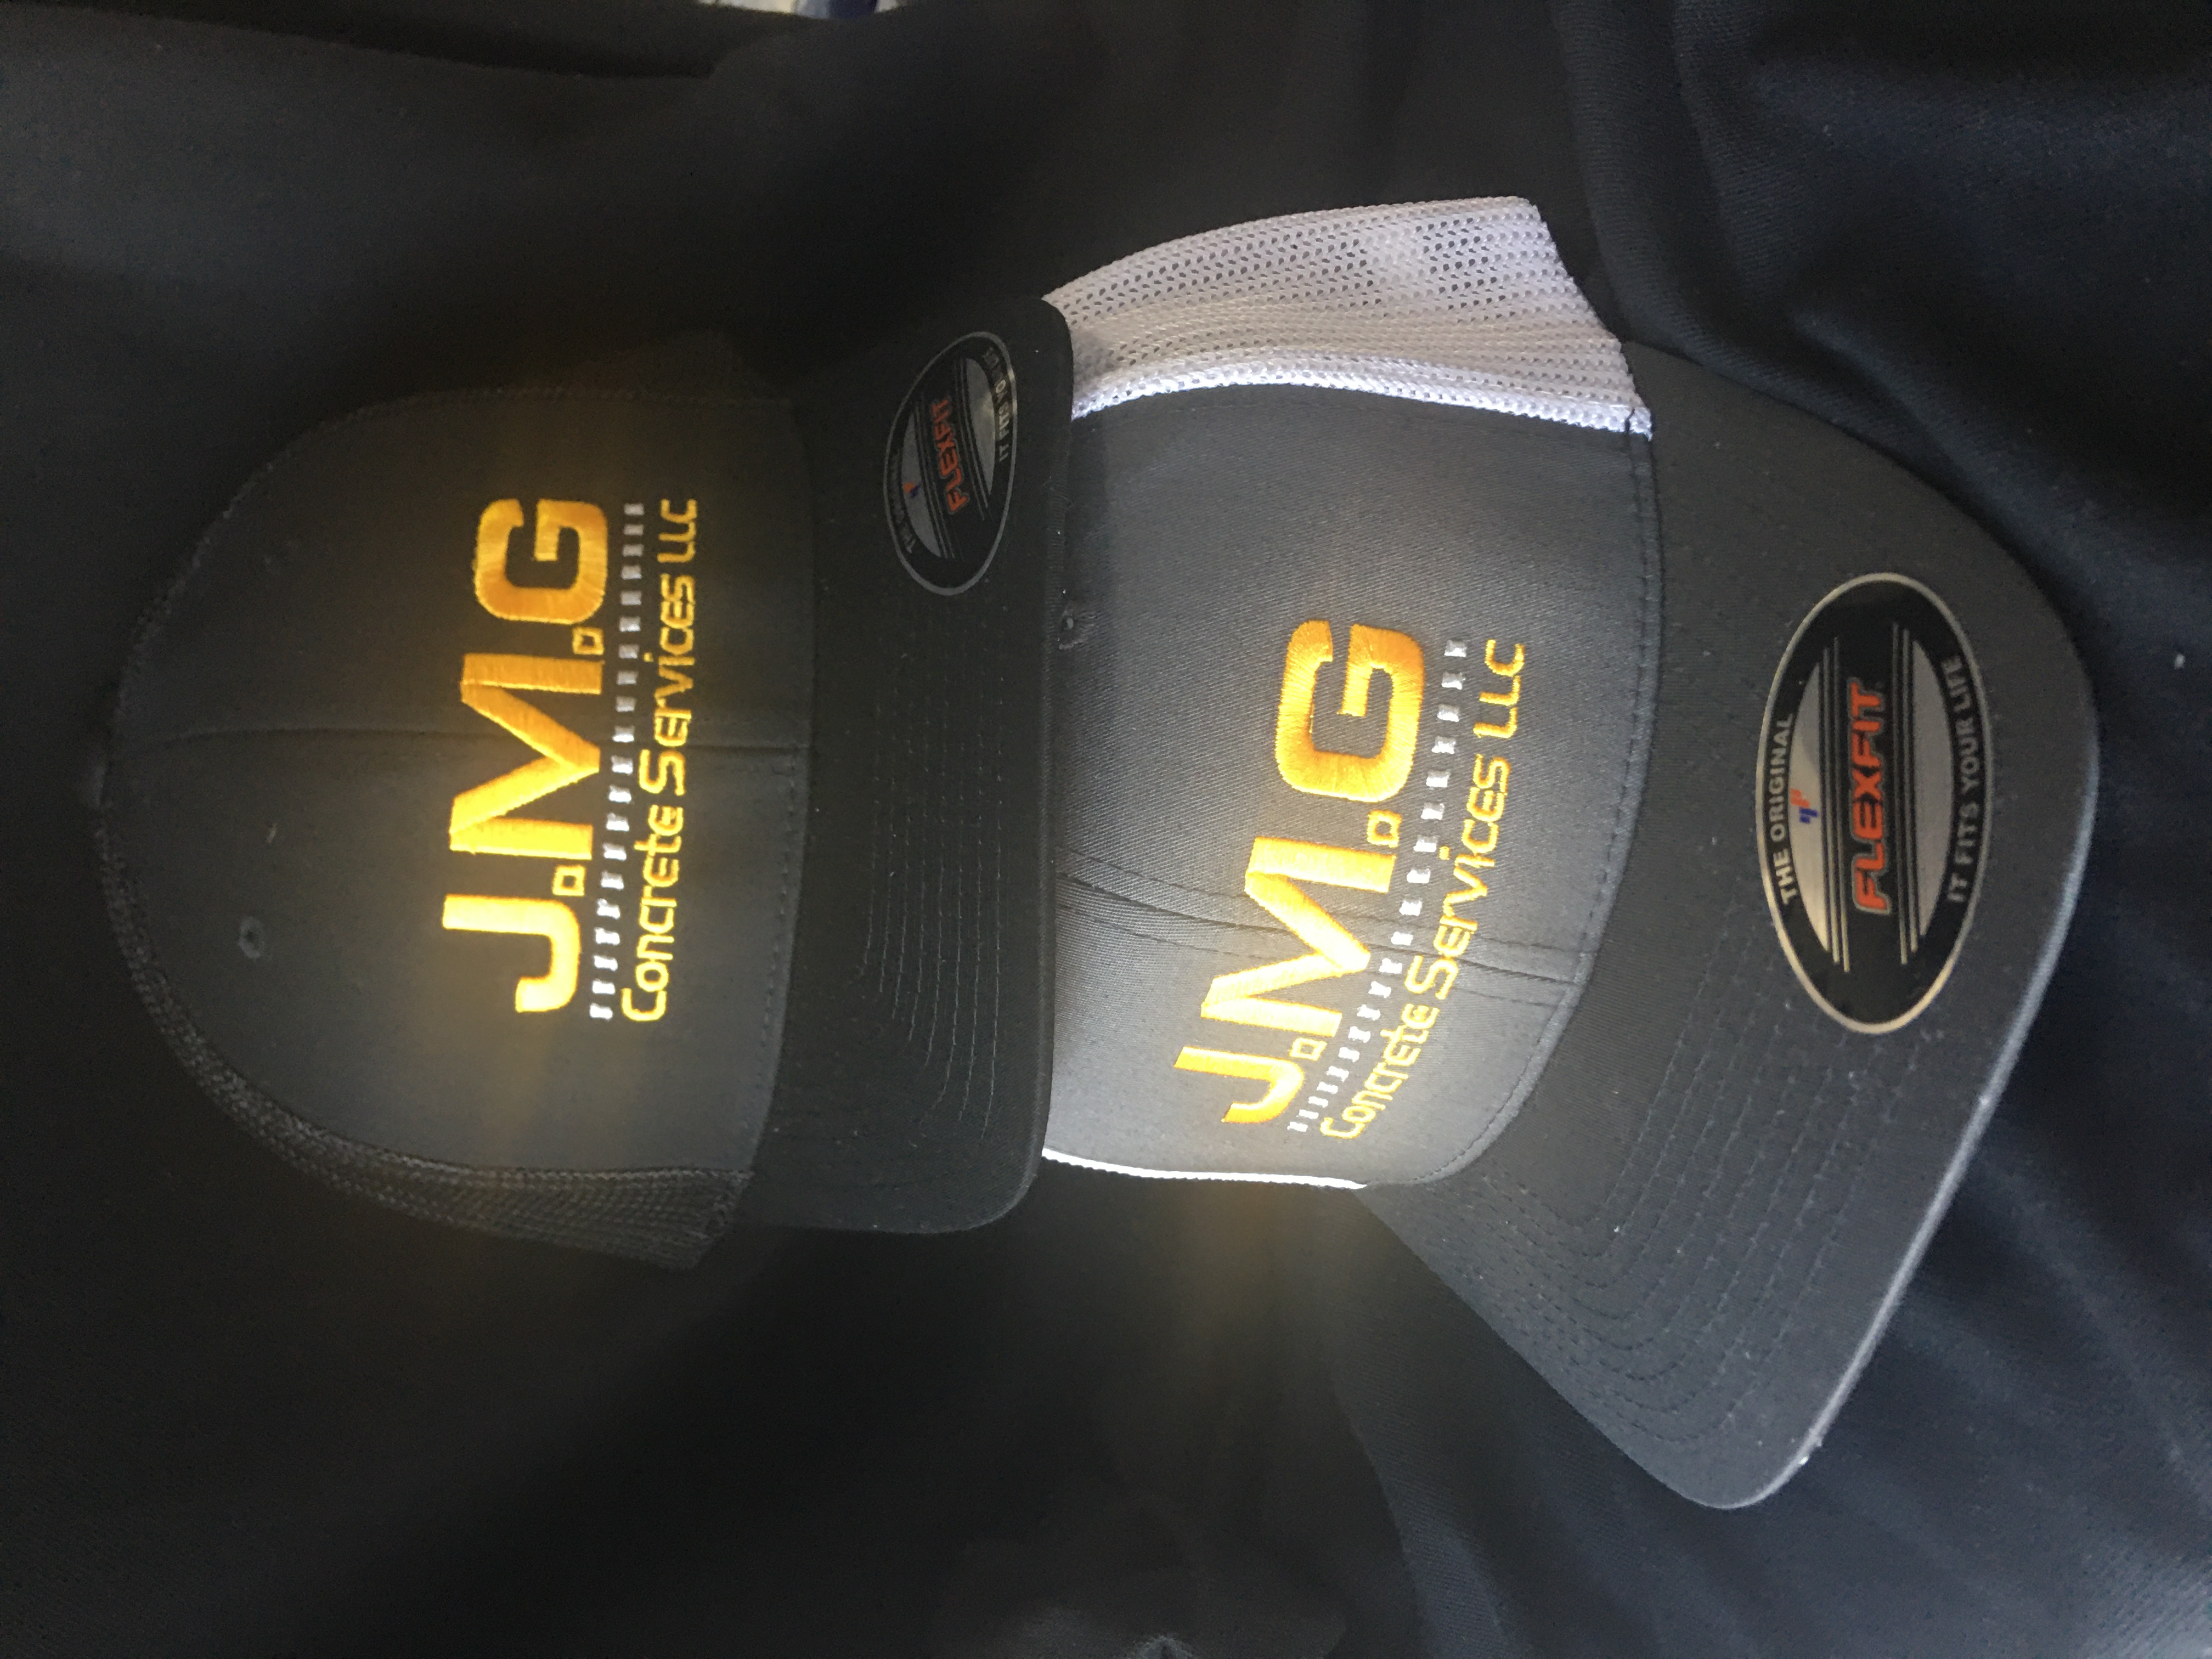 Embroidered logo on two different hats